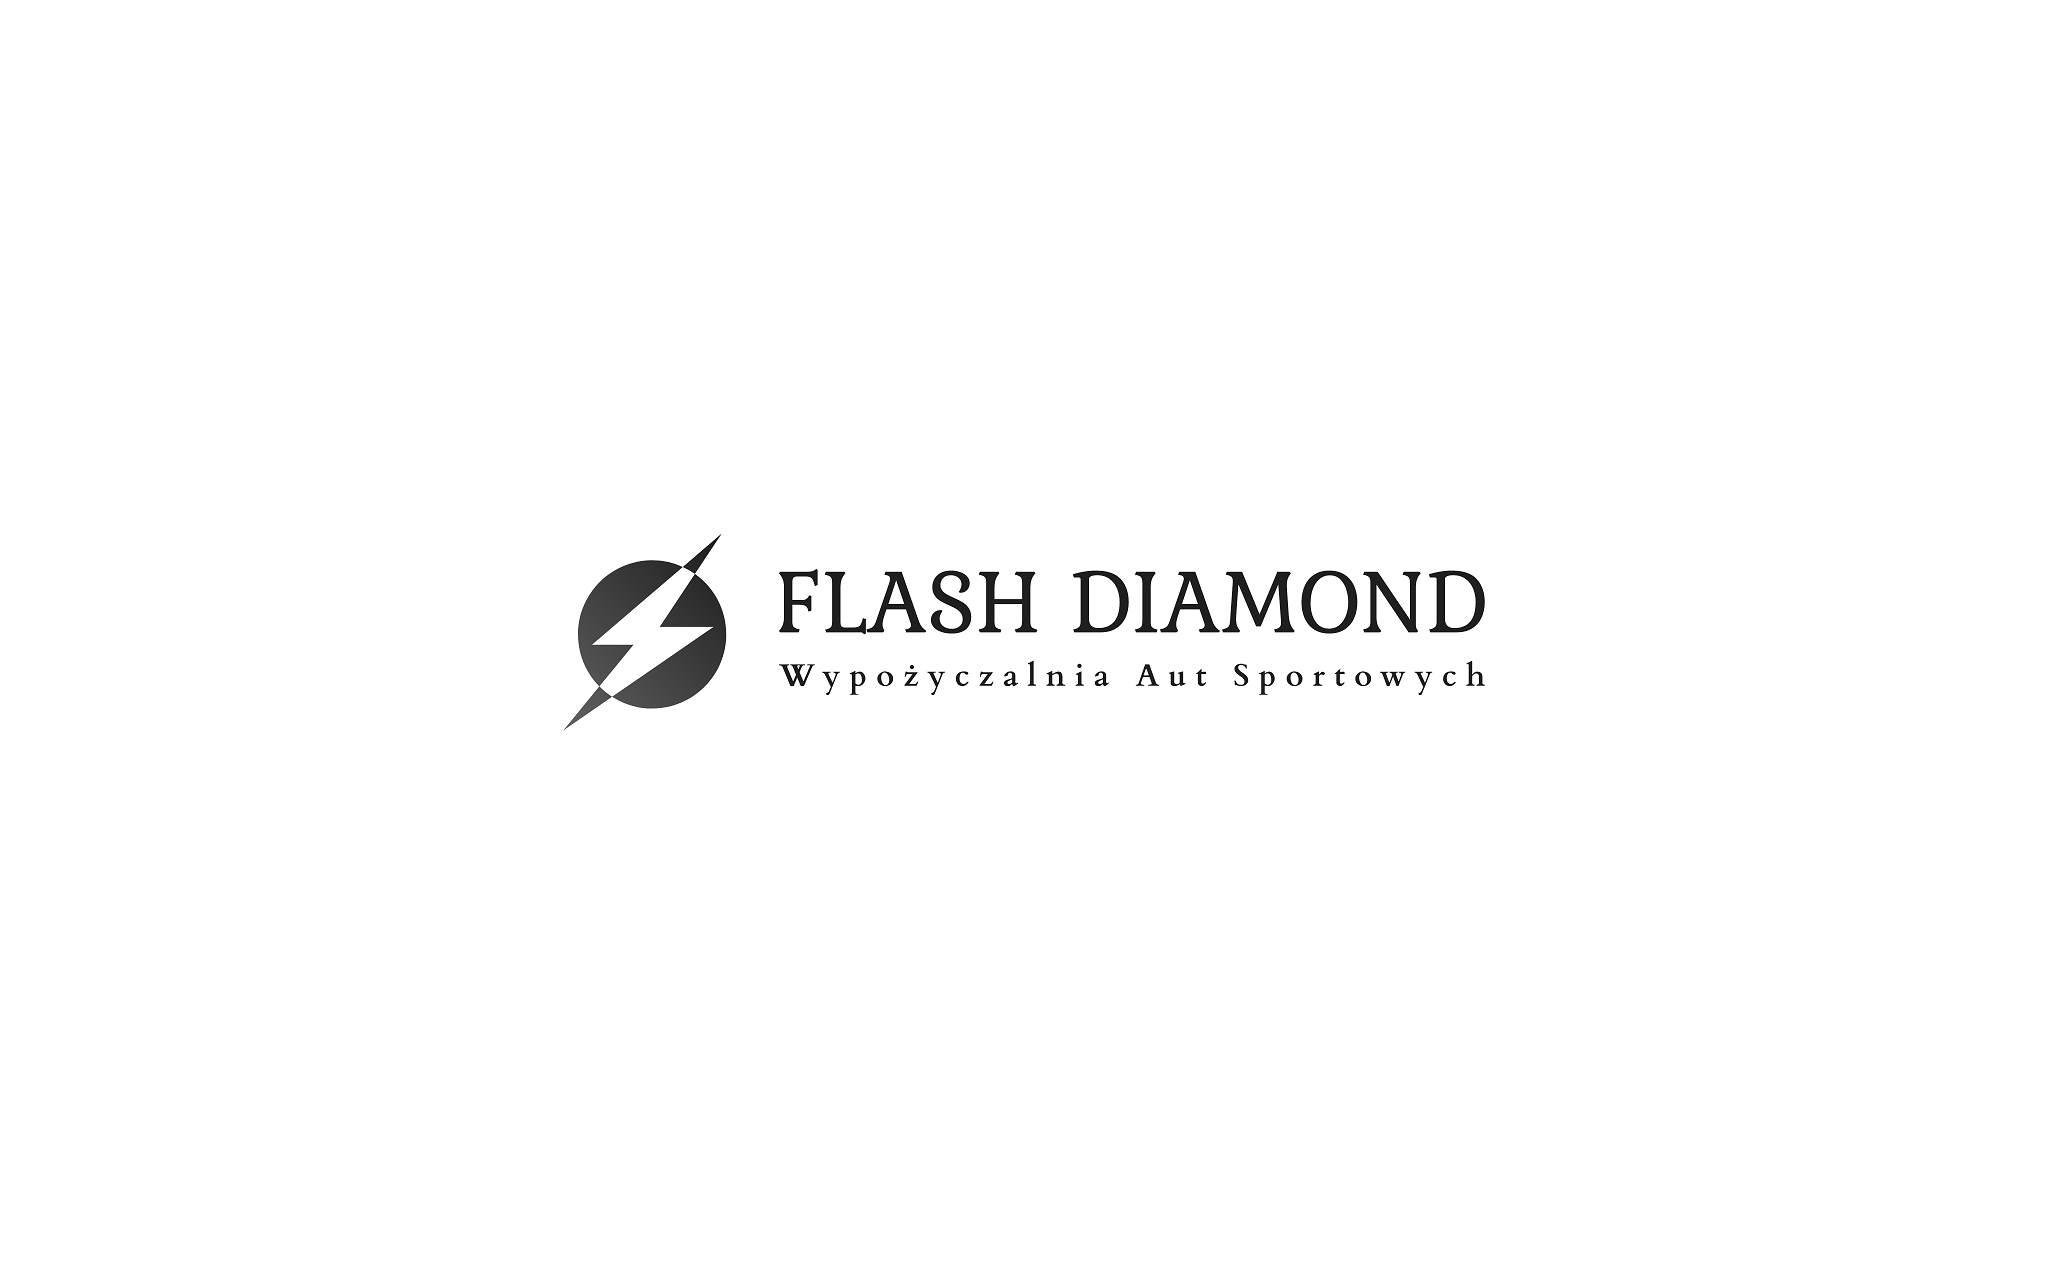 FlashDiamond